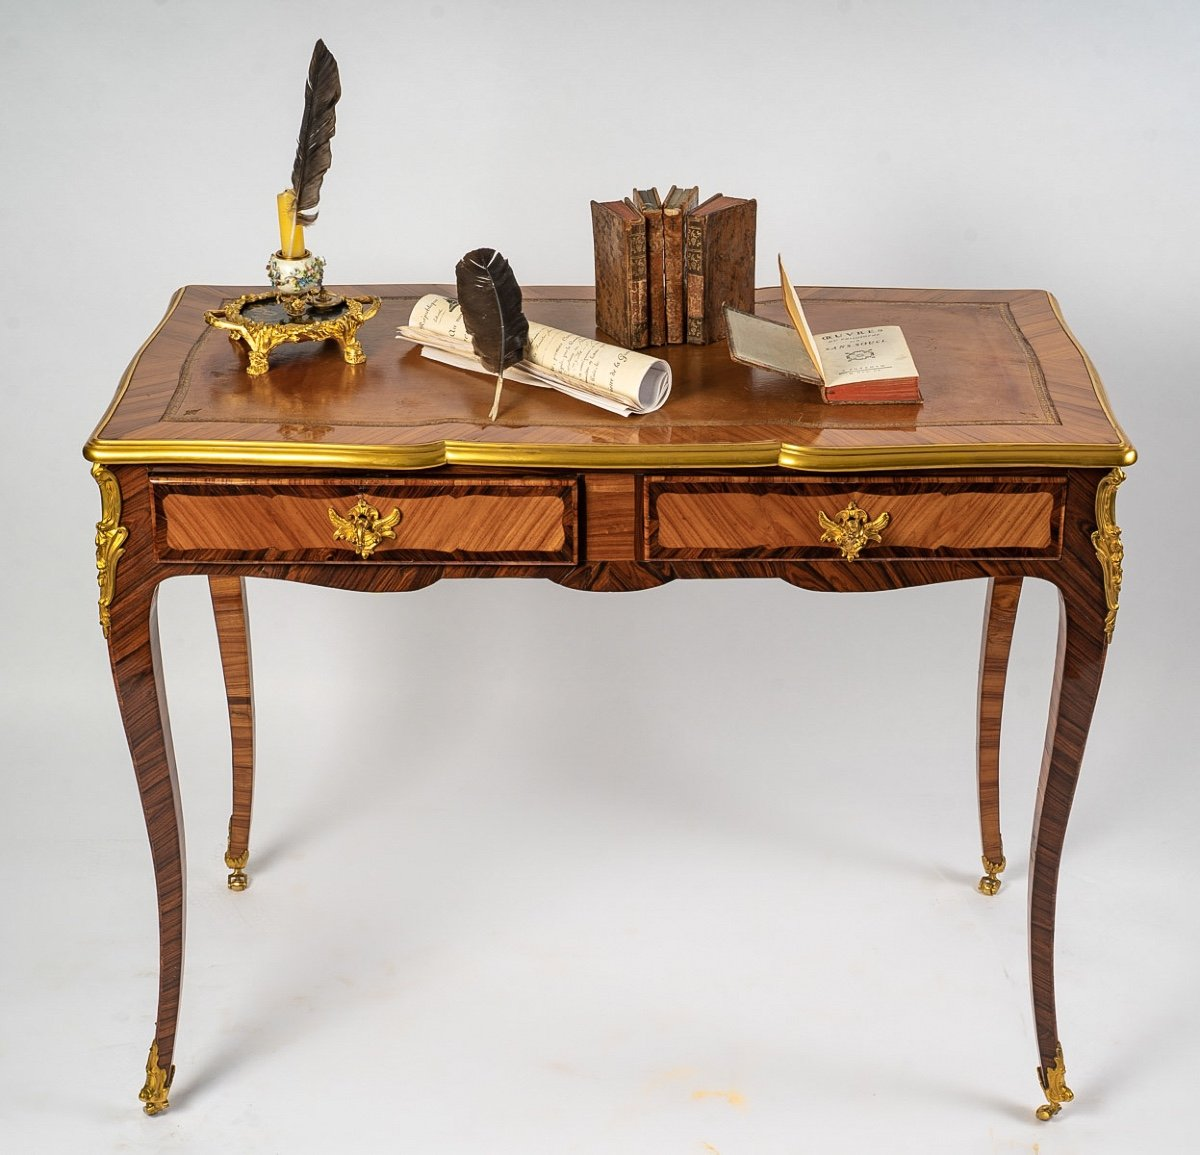 French Louis XV Period, Flat Rosewood And Kingwood Desk With Gilt-bronze Decoration Circa 1740-